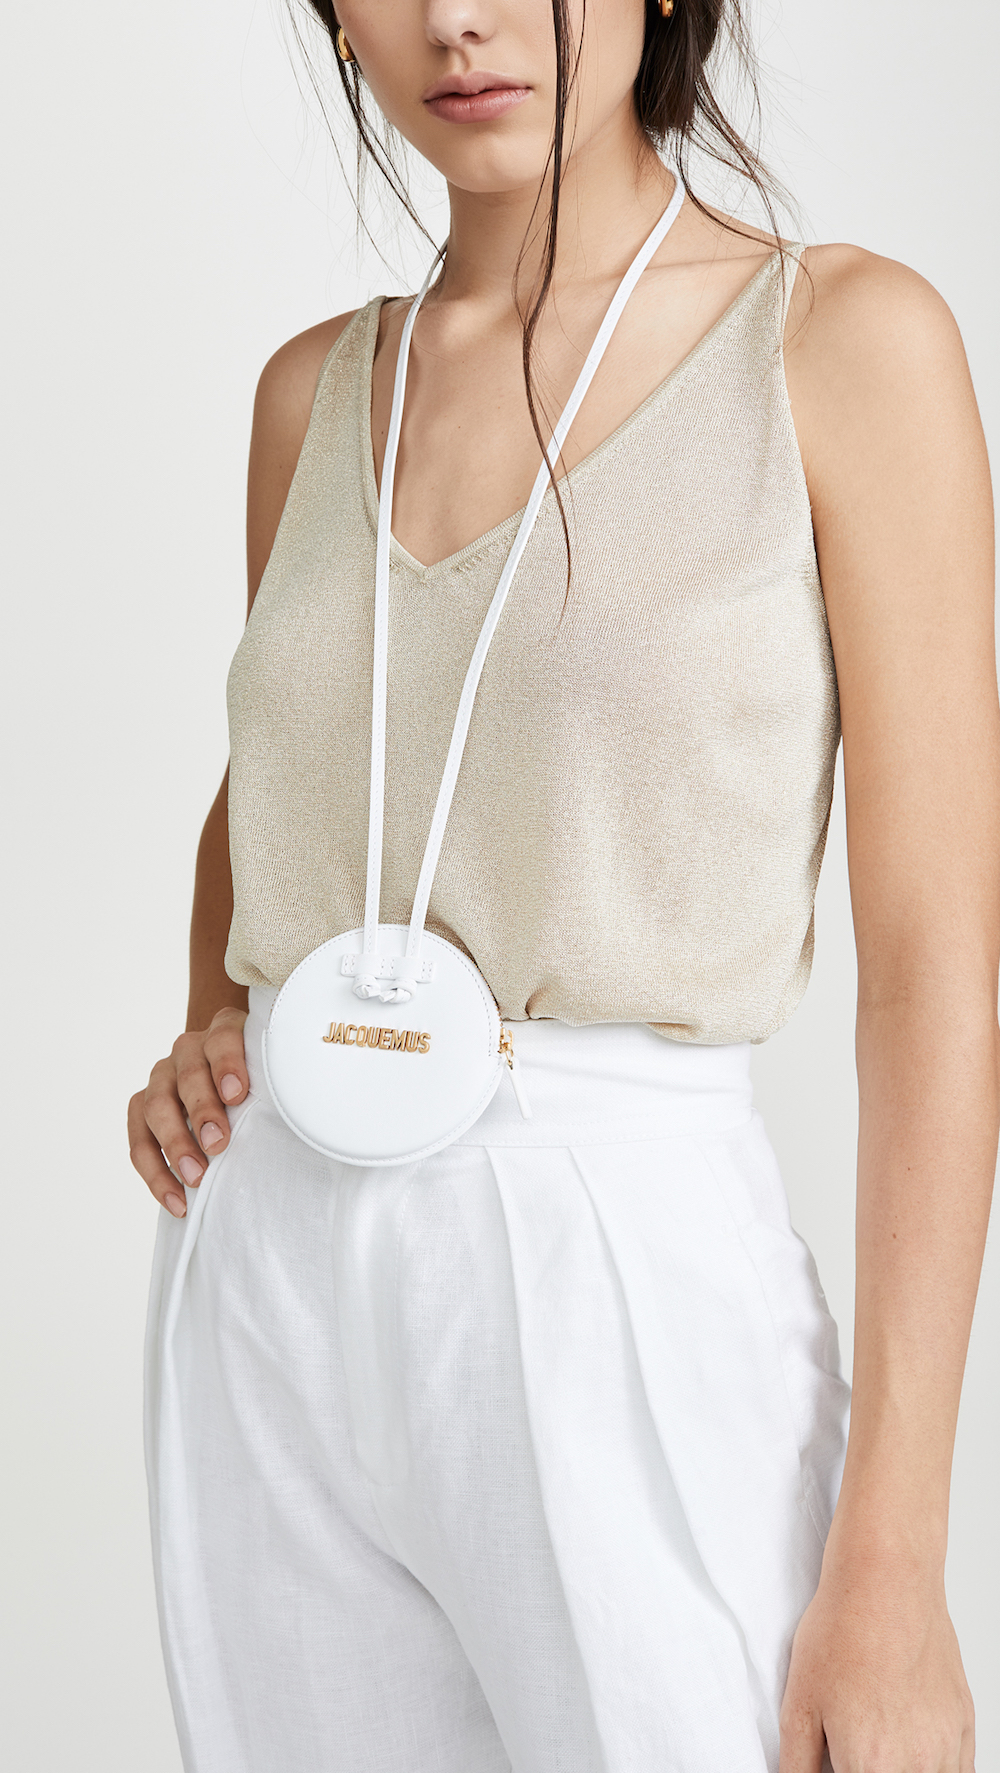 Apparently, Necklace Bags Are a Thing Now